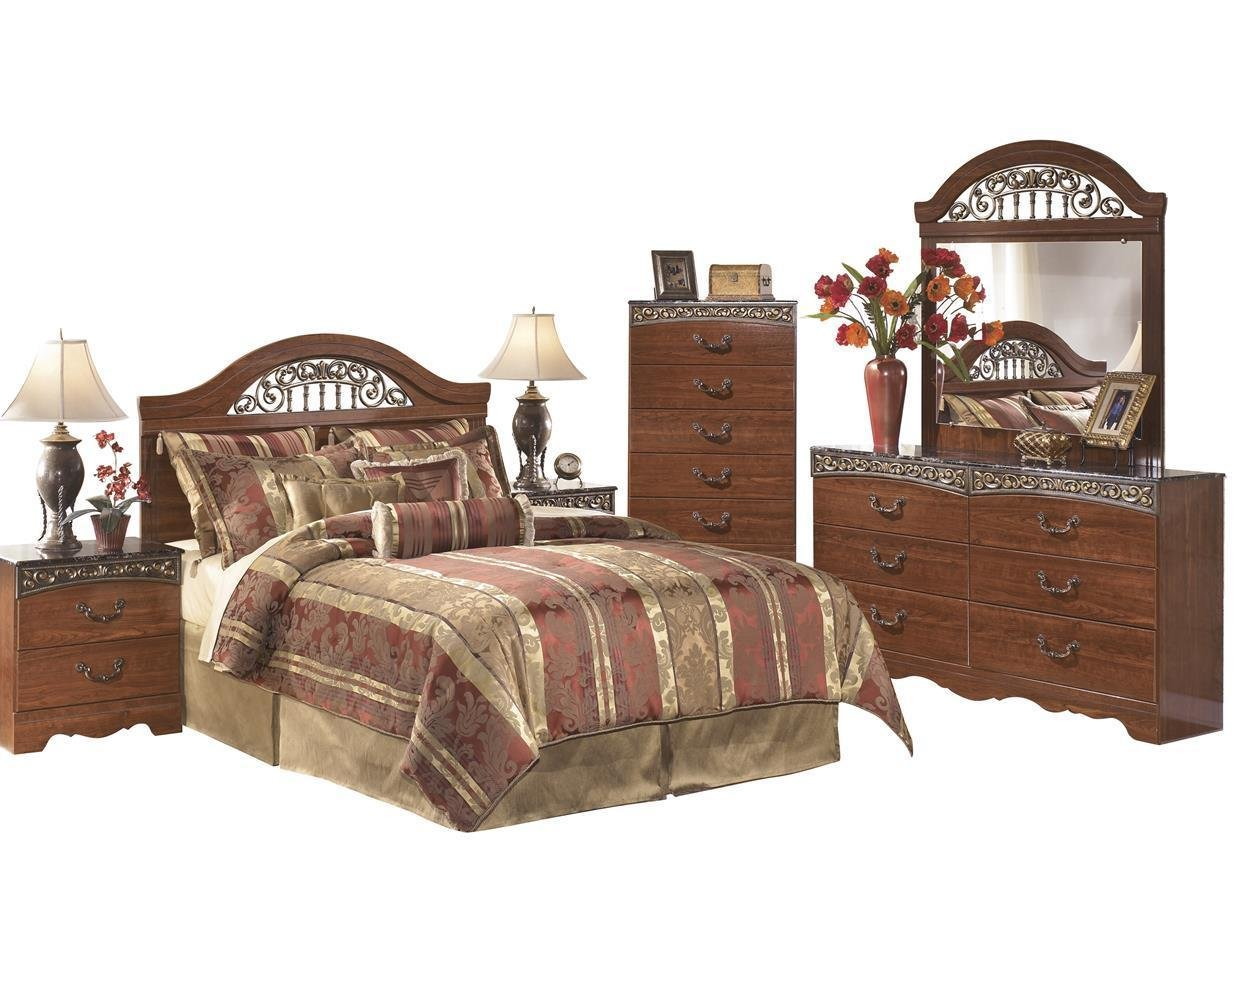 Amazon com ashley fairbrooks estate 6pc queen panel headboard bedroom set with nightstand chest in reddish brown kitchen dining